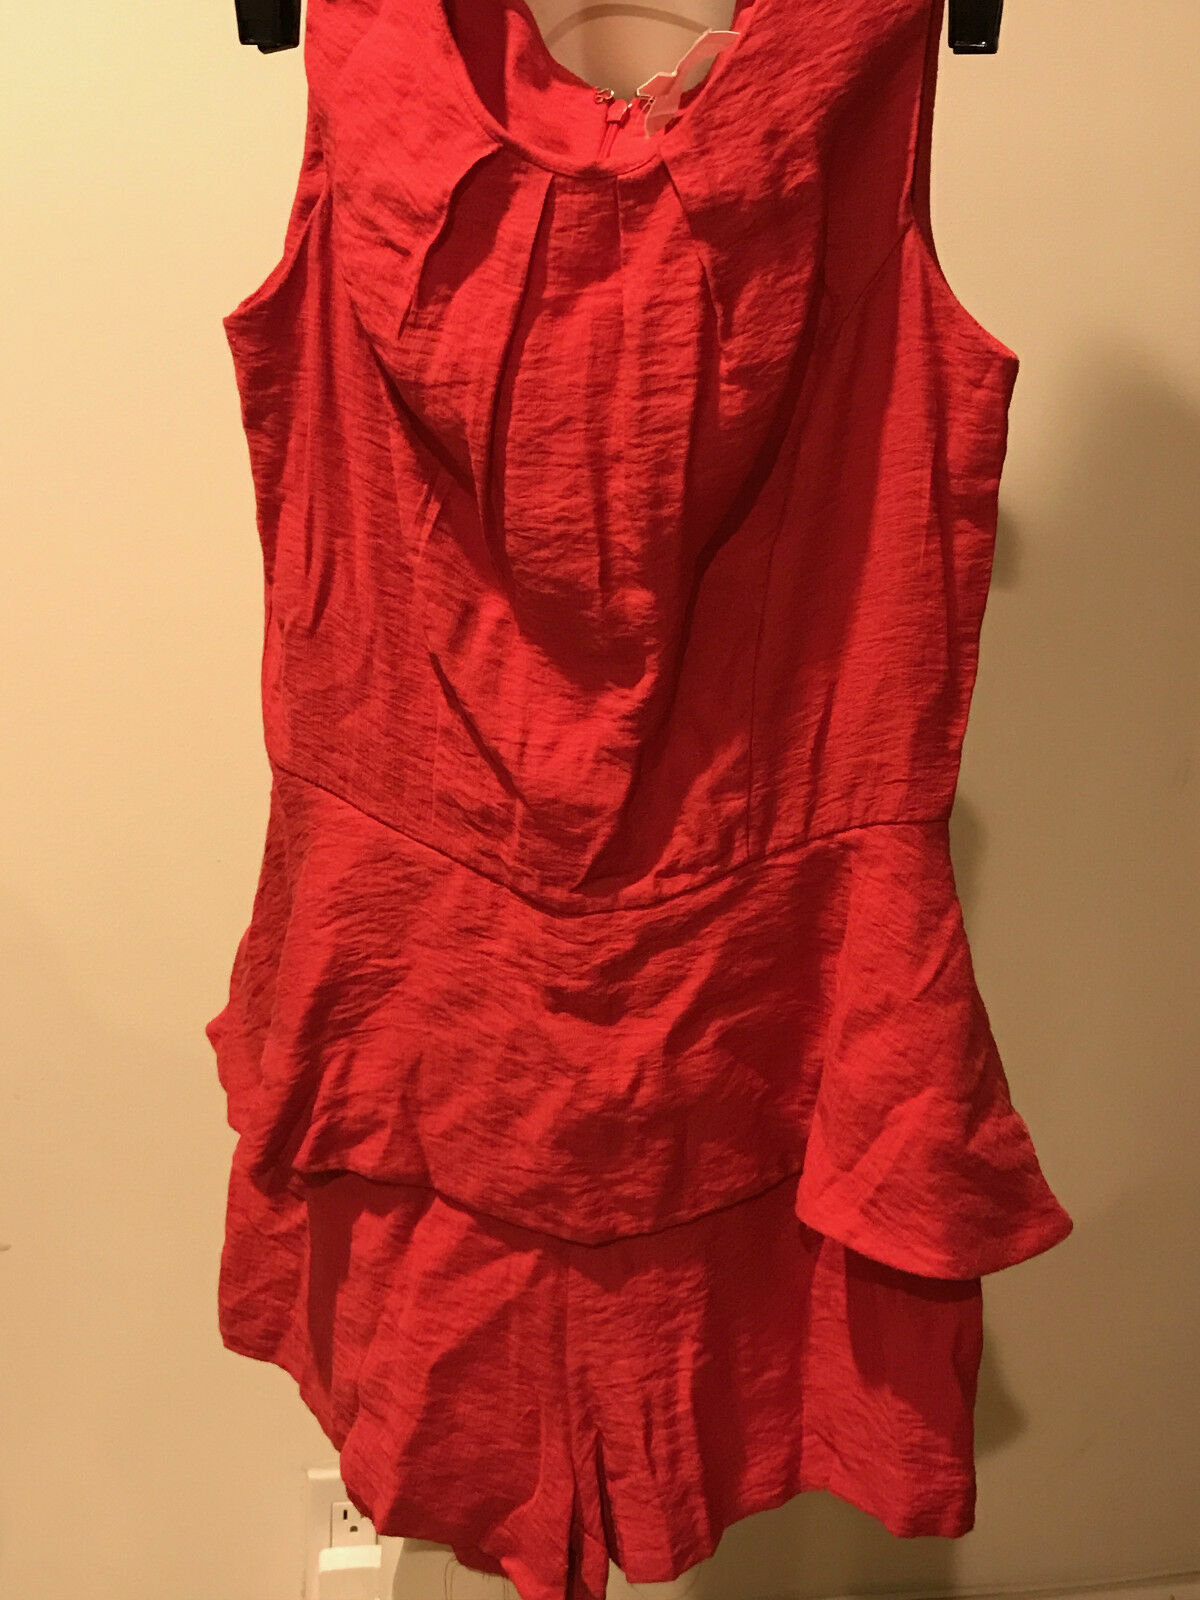 Preowned ALEXIS orange JUMPER ROMPER  SIZE S    BB